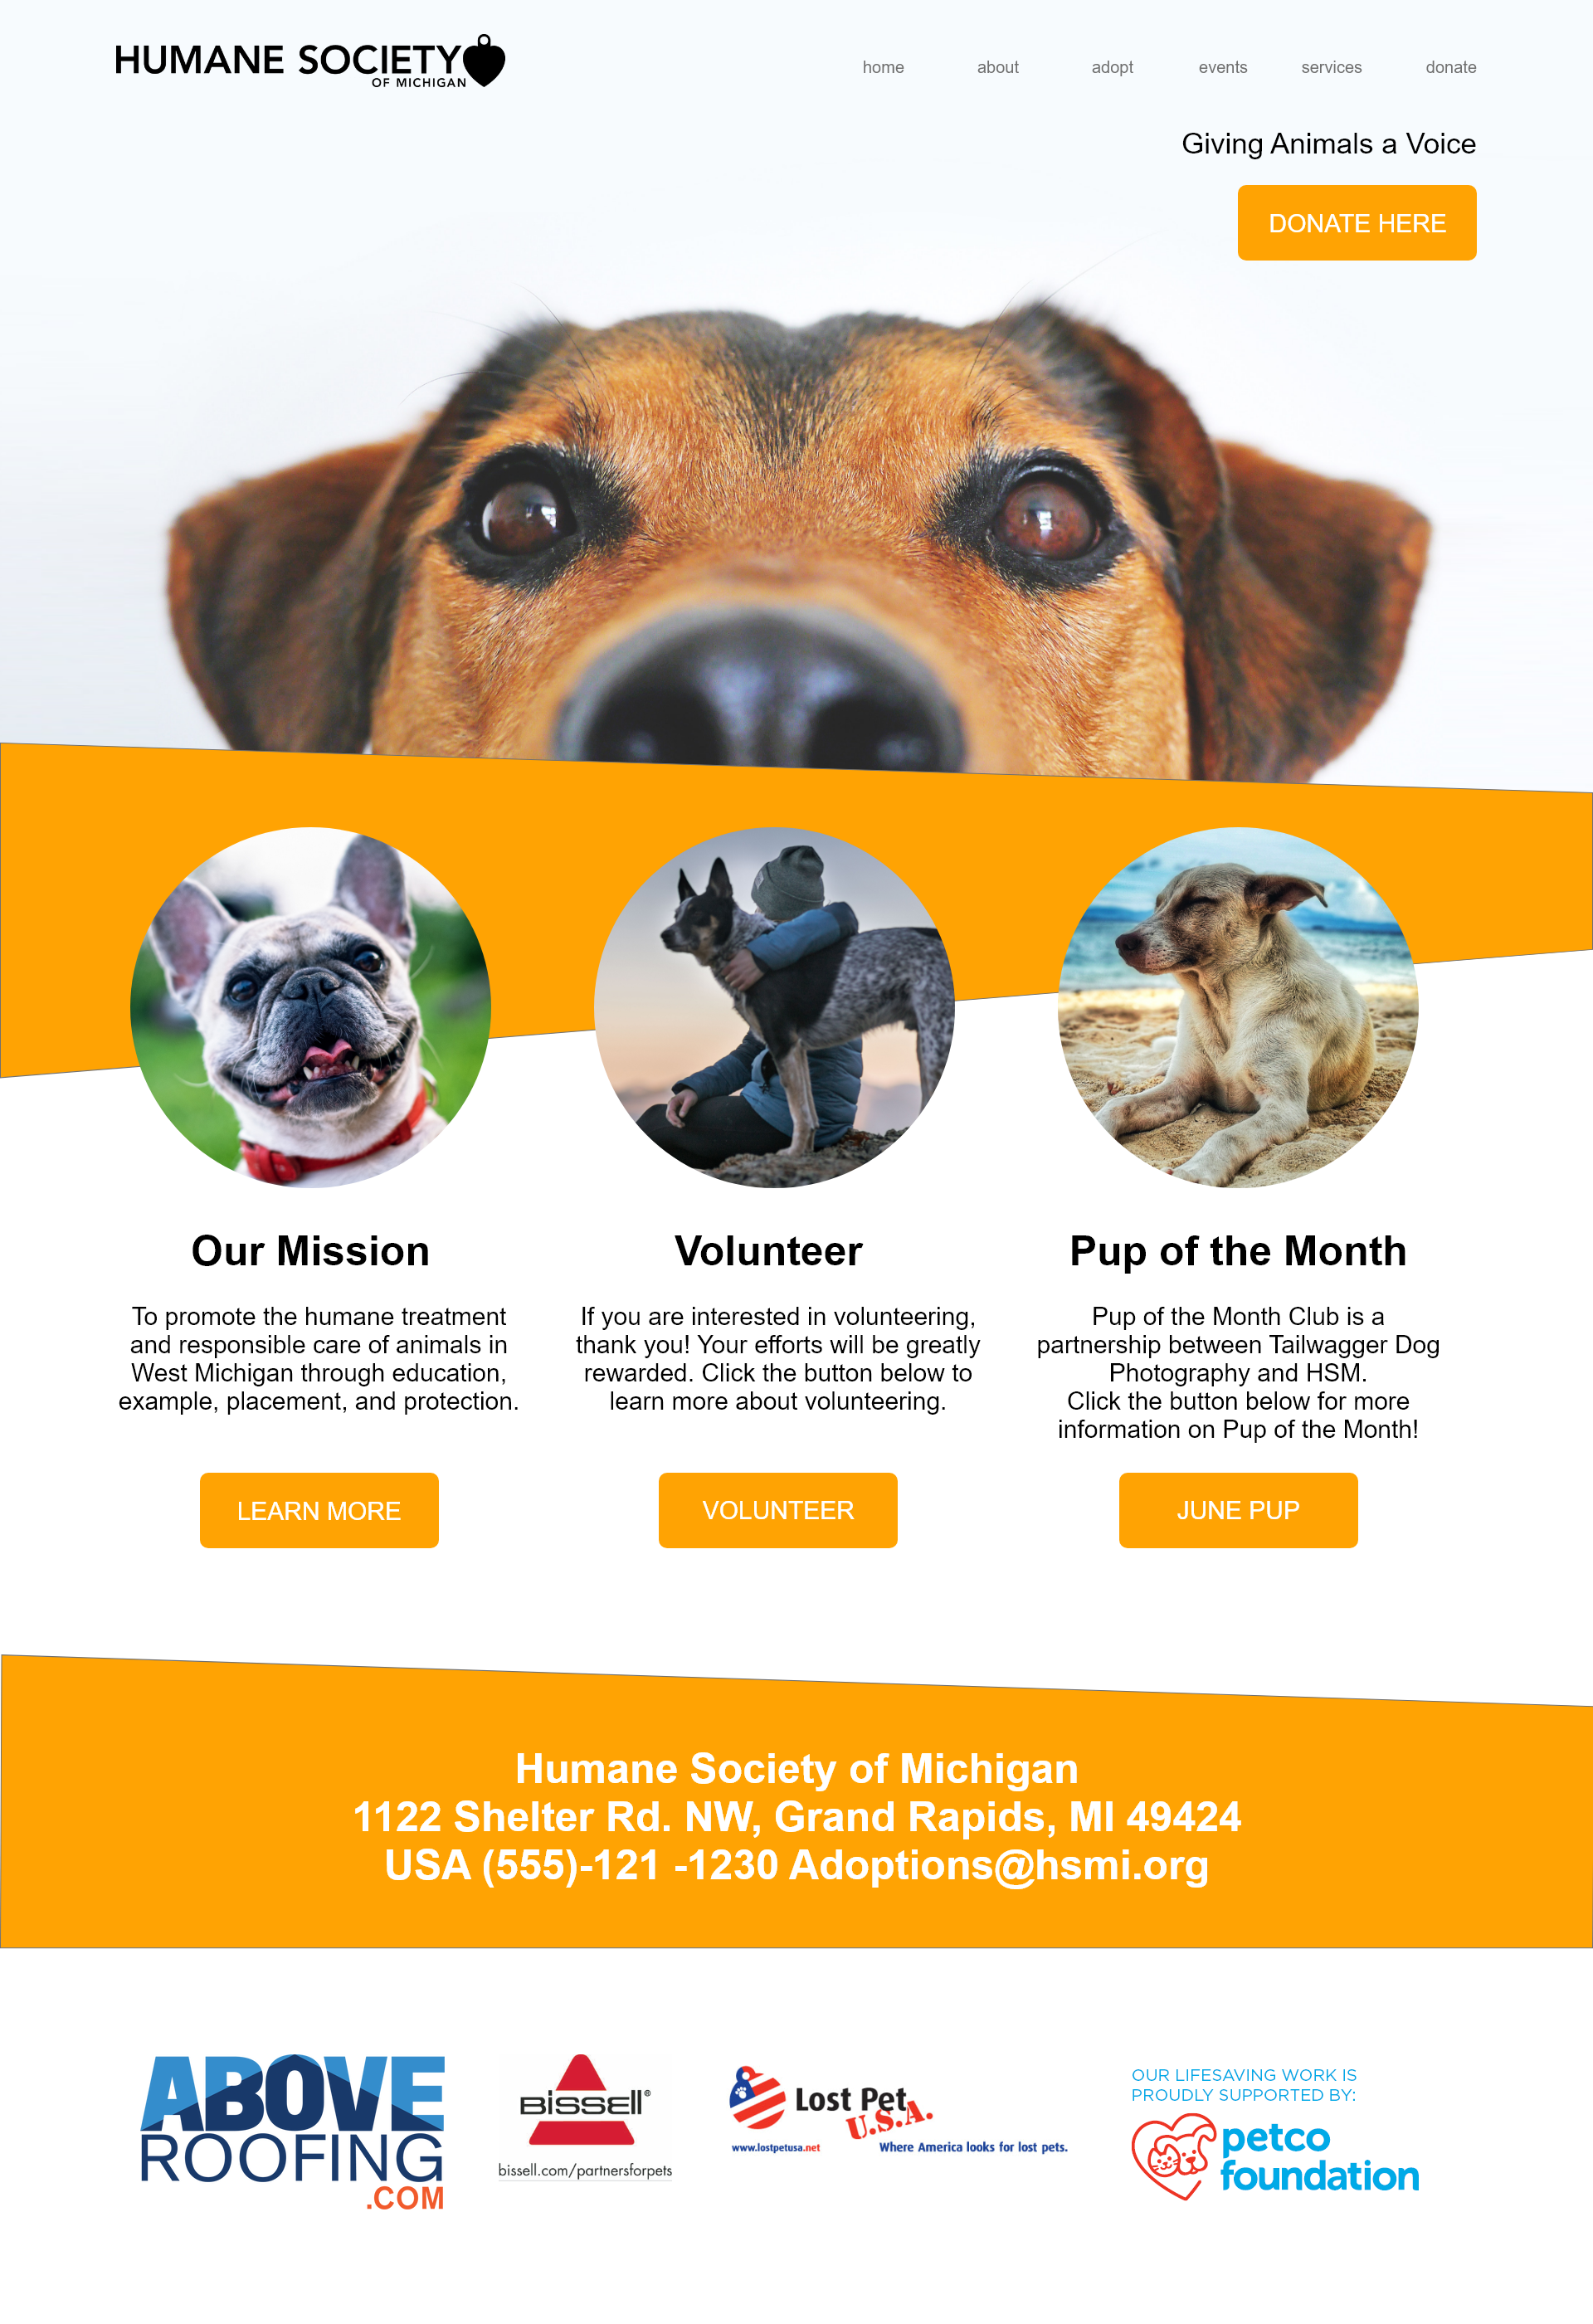 Mocked up responsive UI Design to be used as an animal shelter homepage.